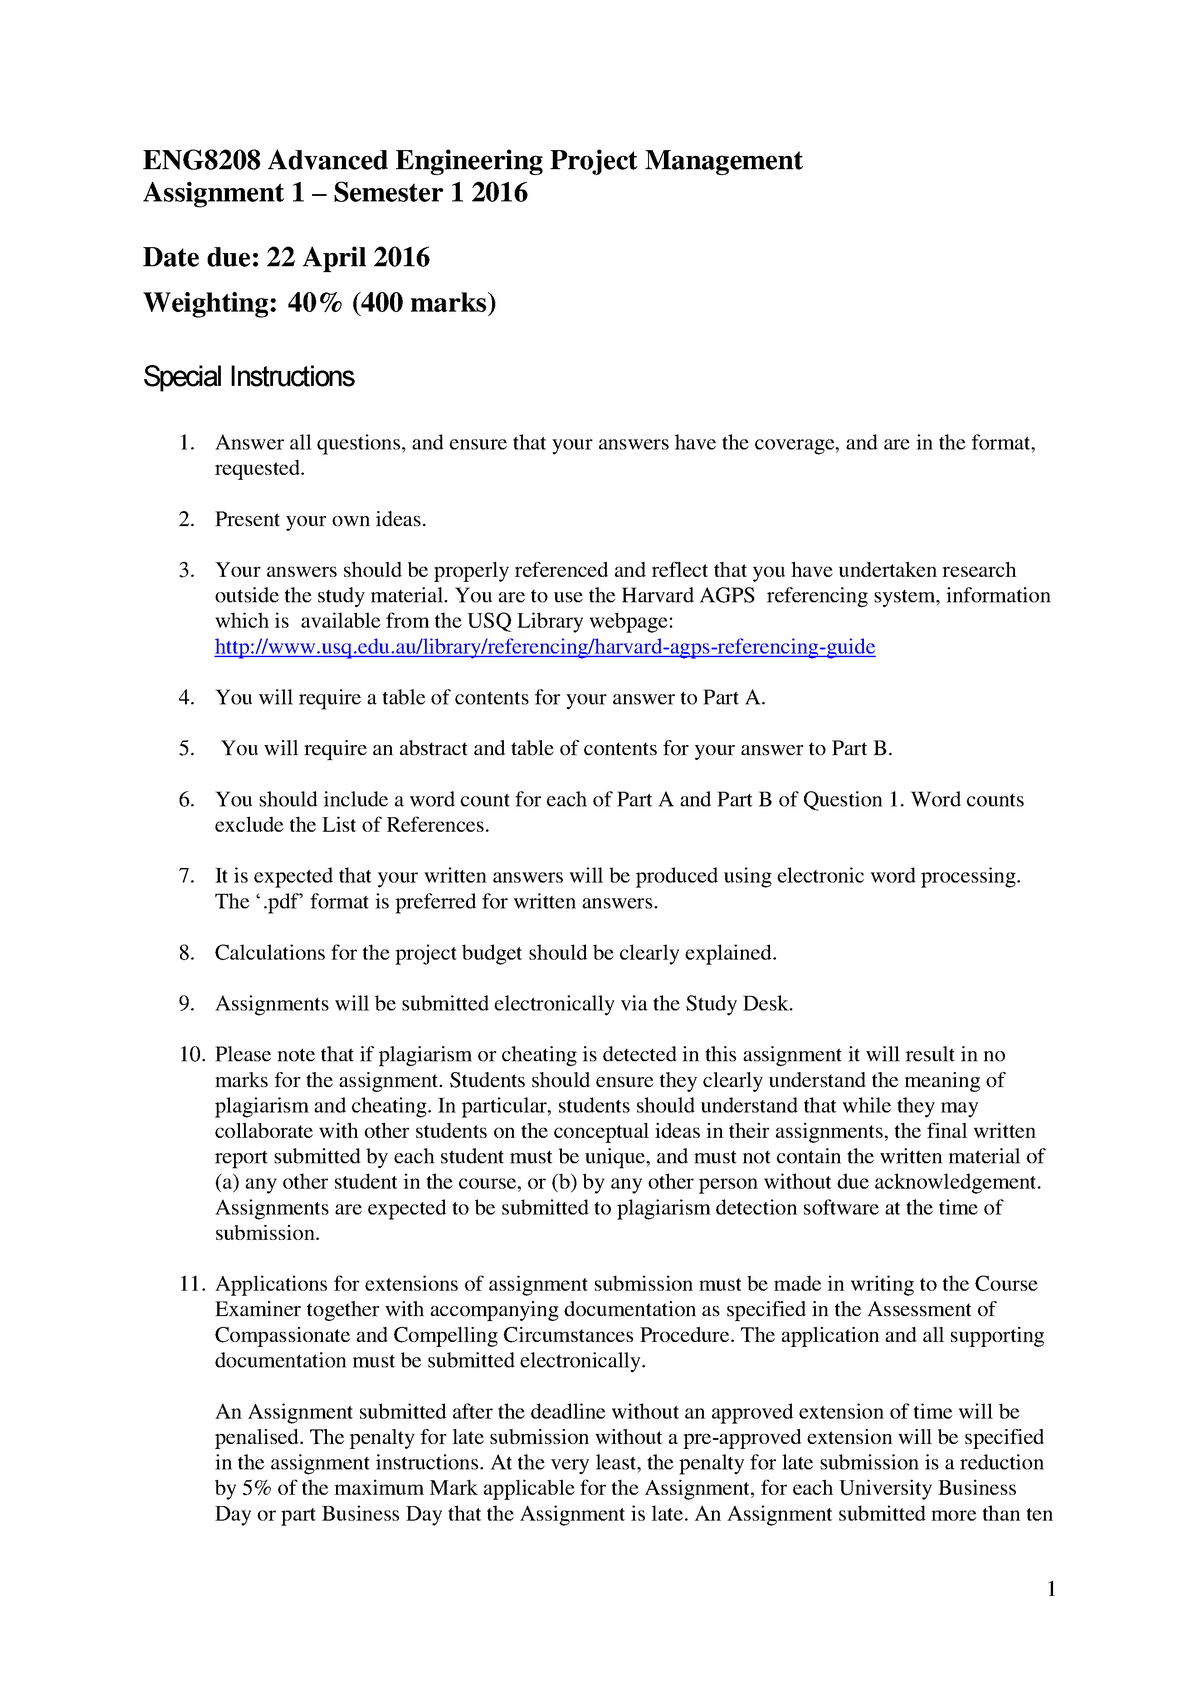 Assignments 1 and 2 - engineering project management - USQ